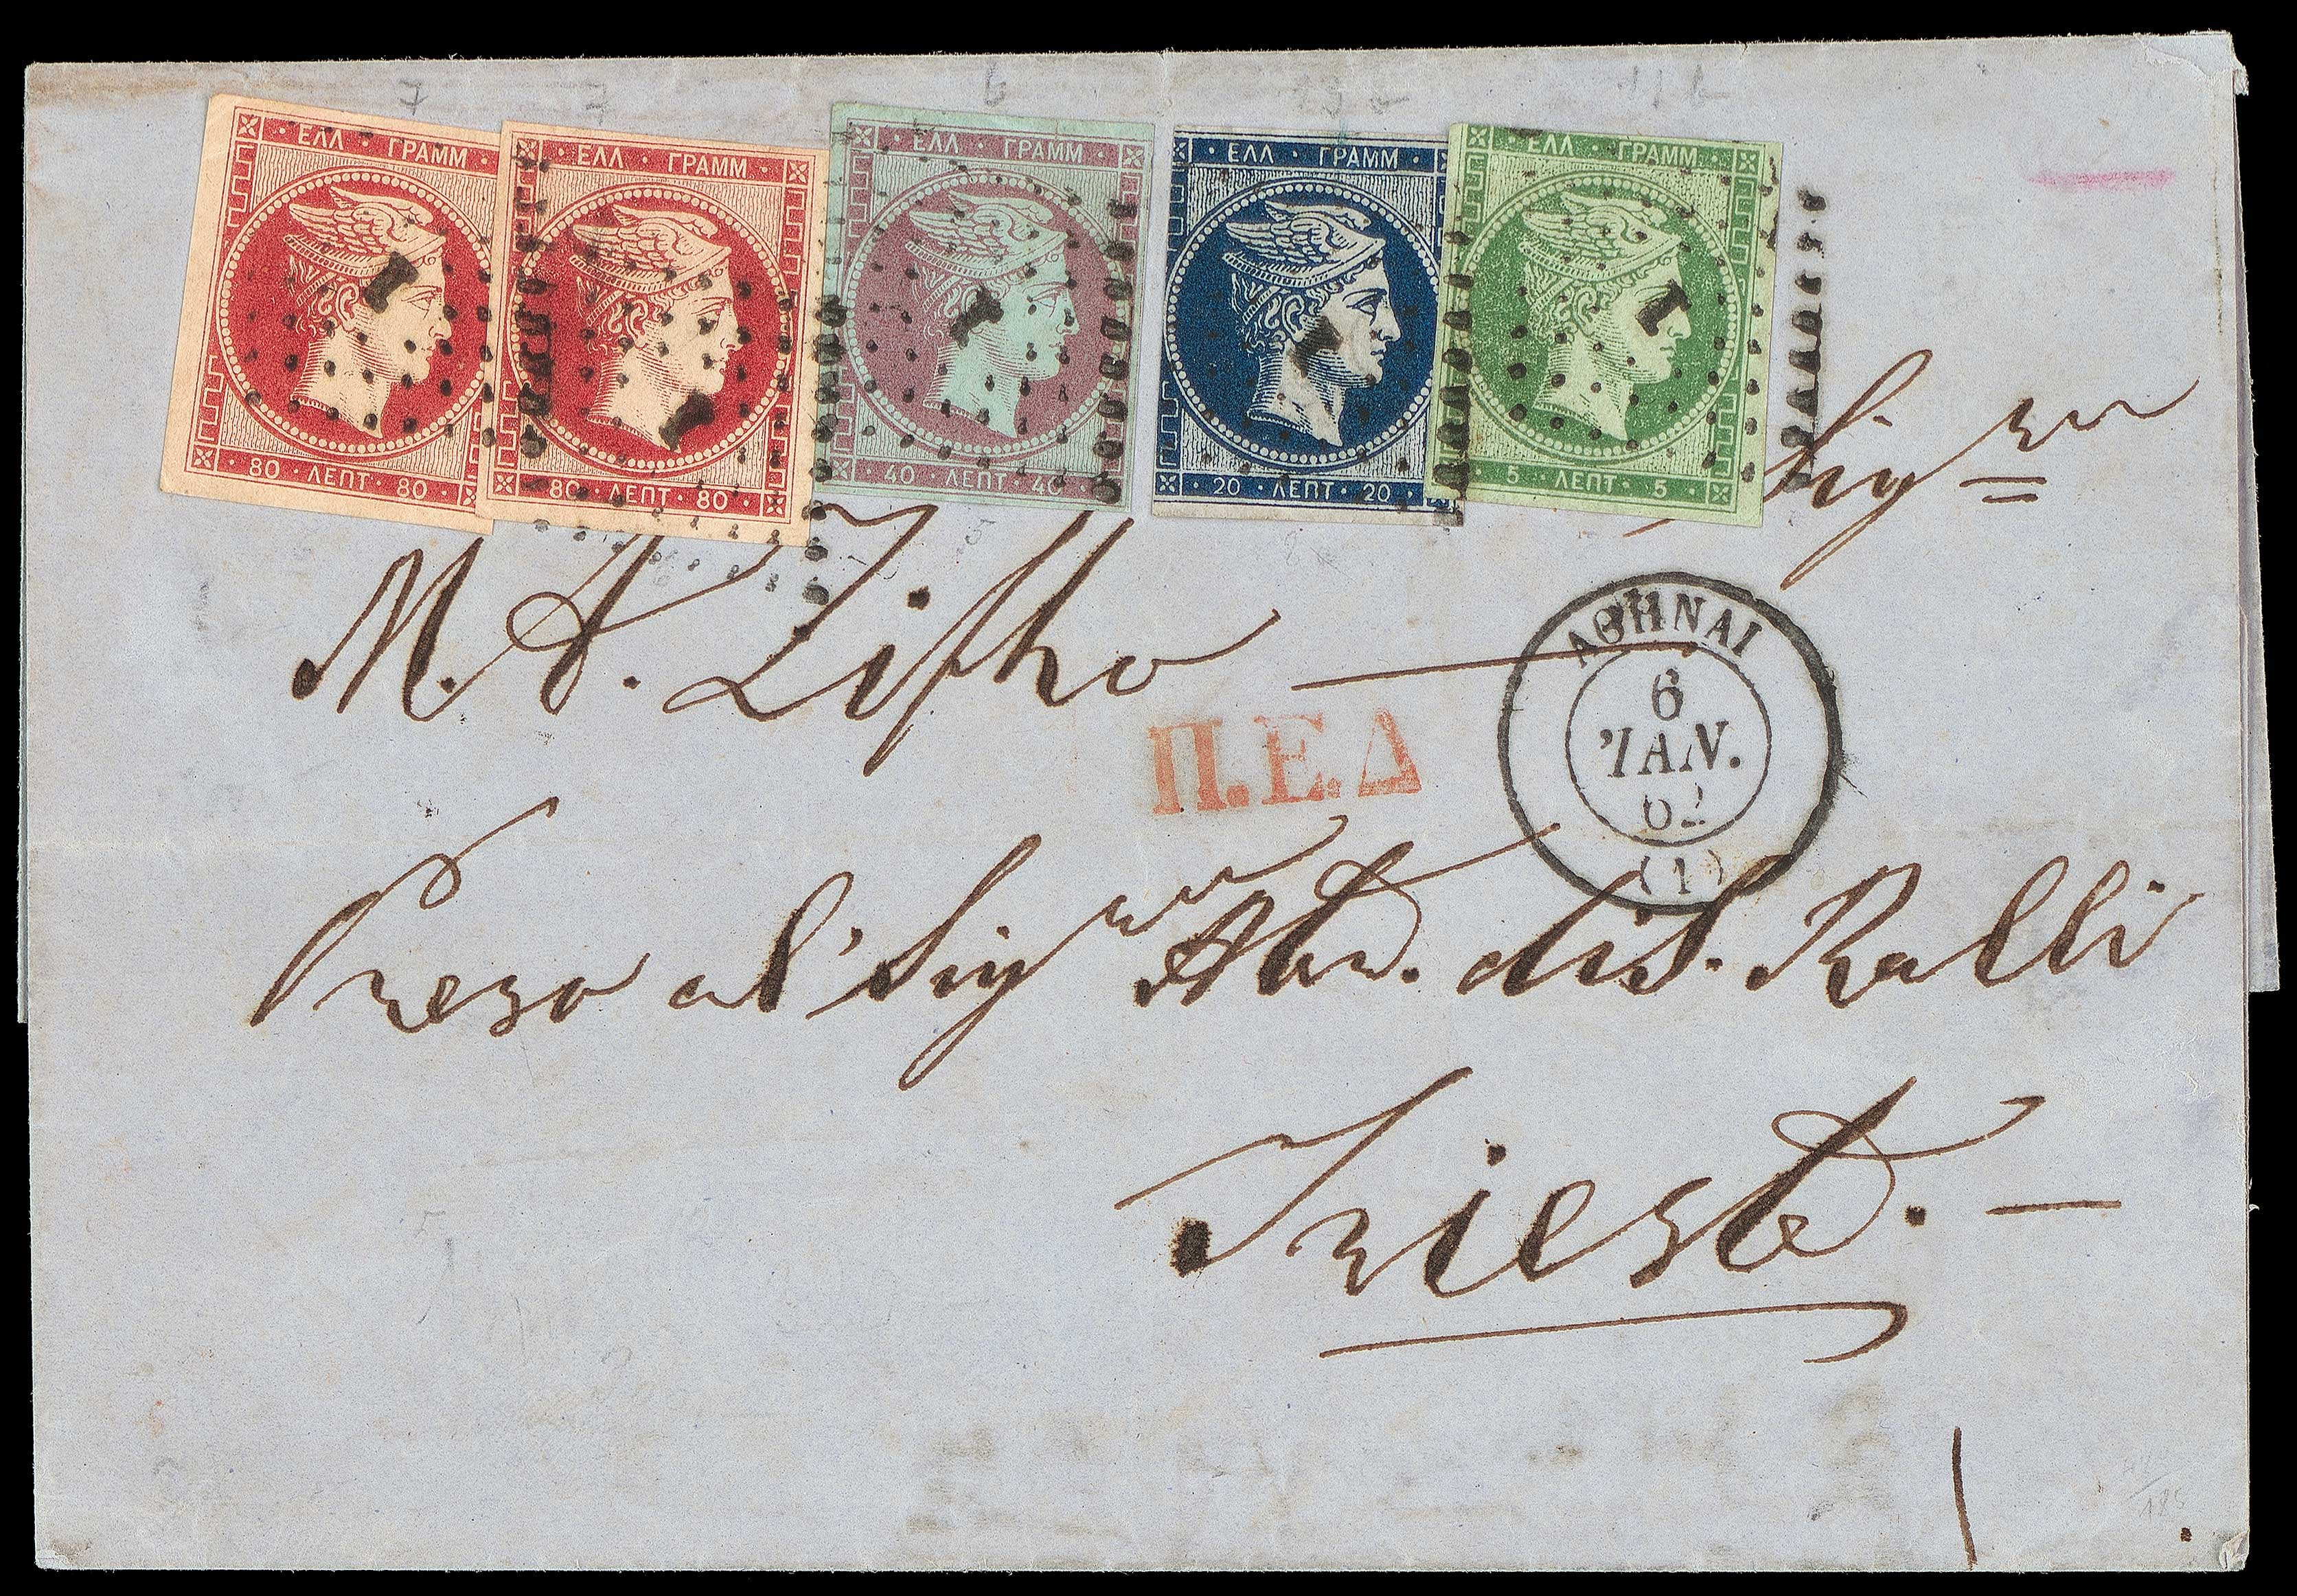 Lot 43 - -  LARGE HERMES HEAD 1861 paris print -  A. Karamitsos Public & Live Internet Auction 666 Large Hermes Heads Exceptional Stamps from Great Collections